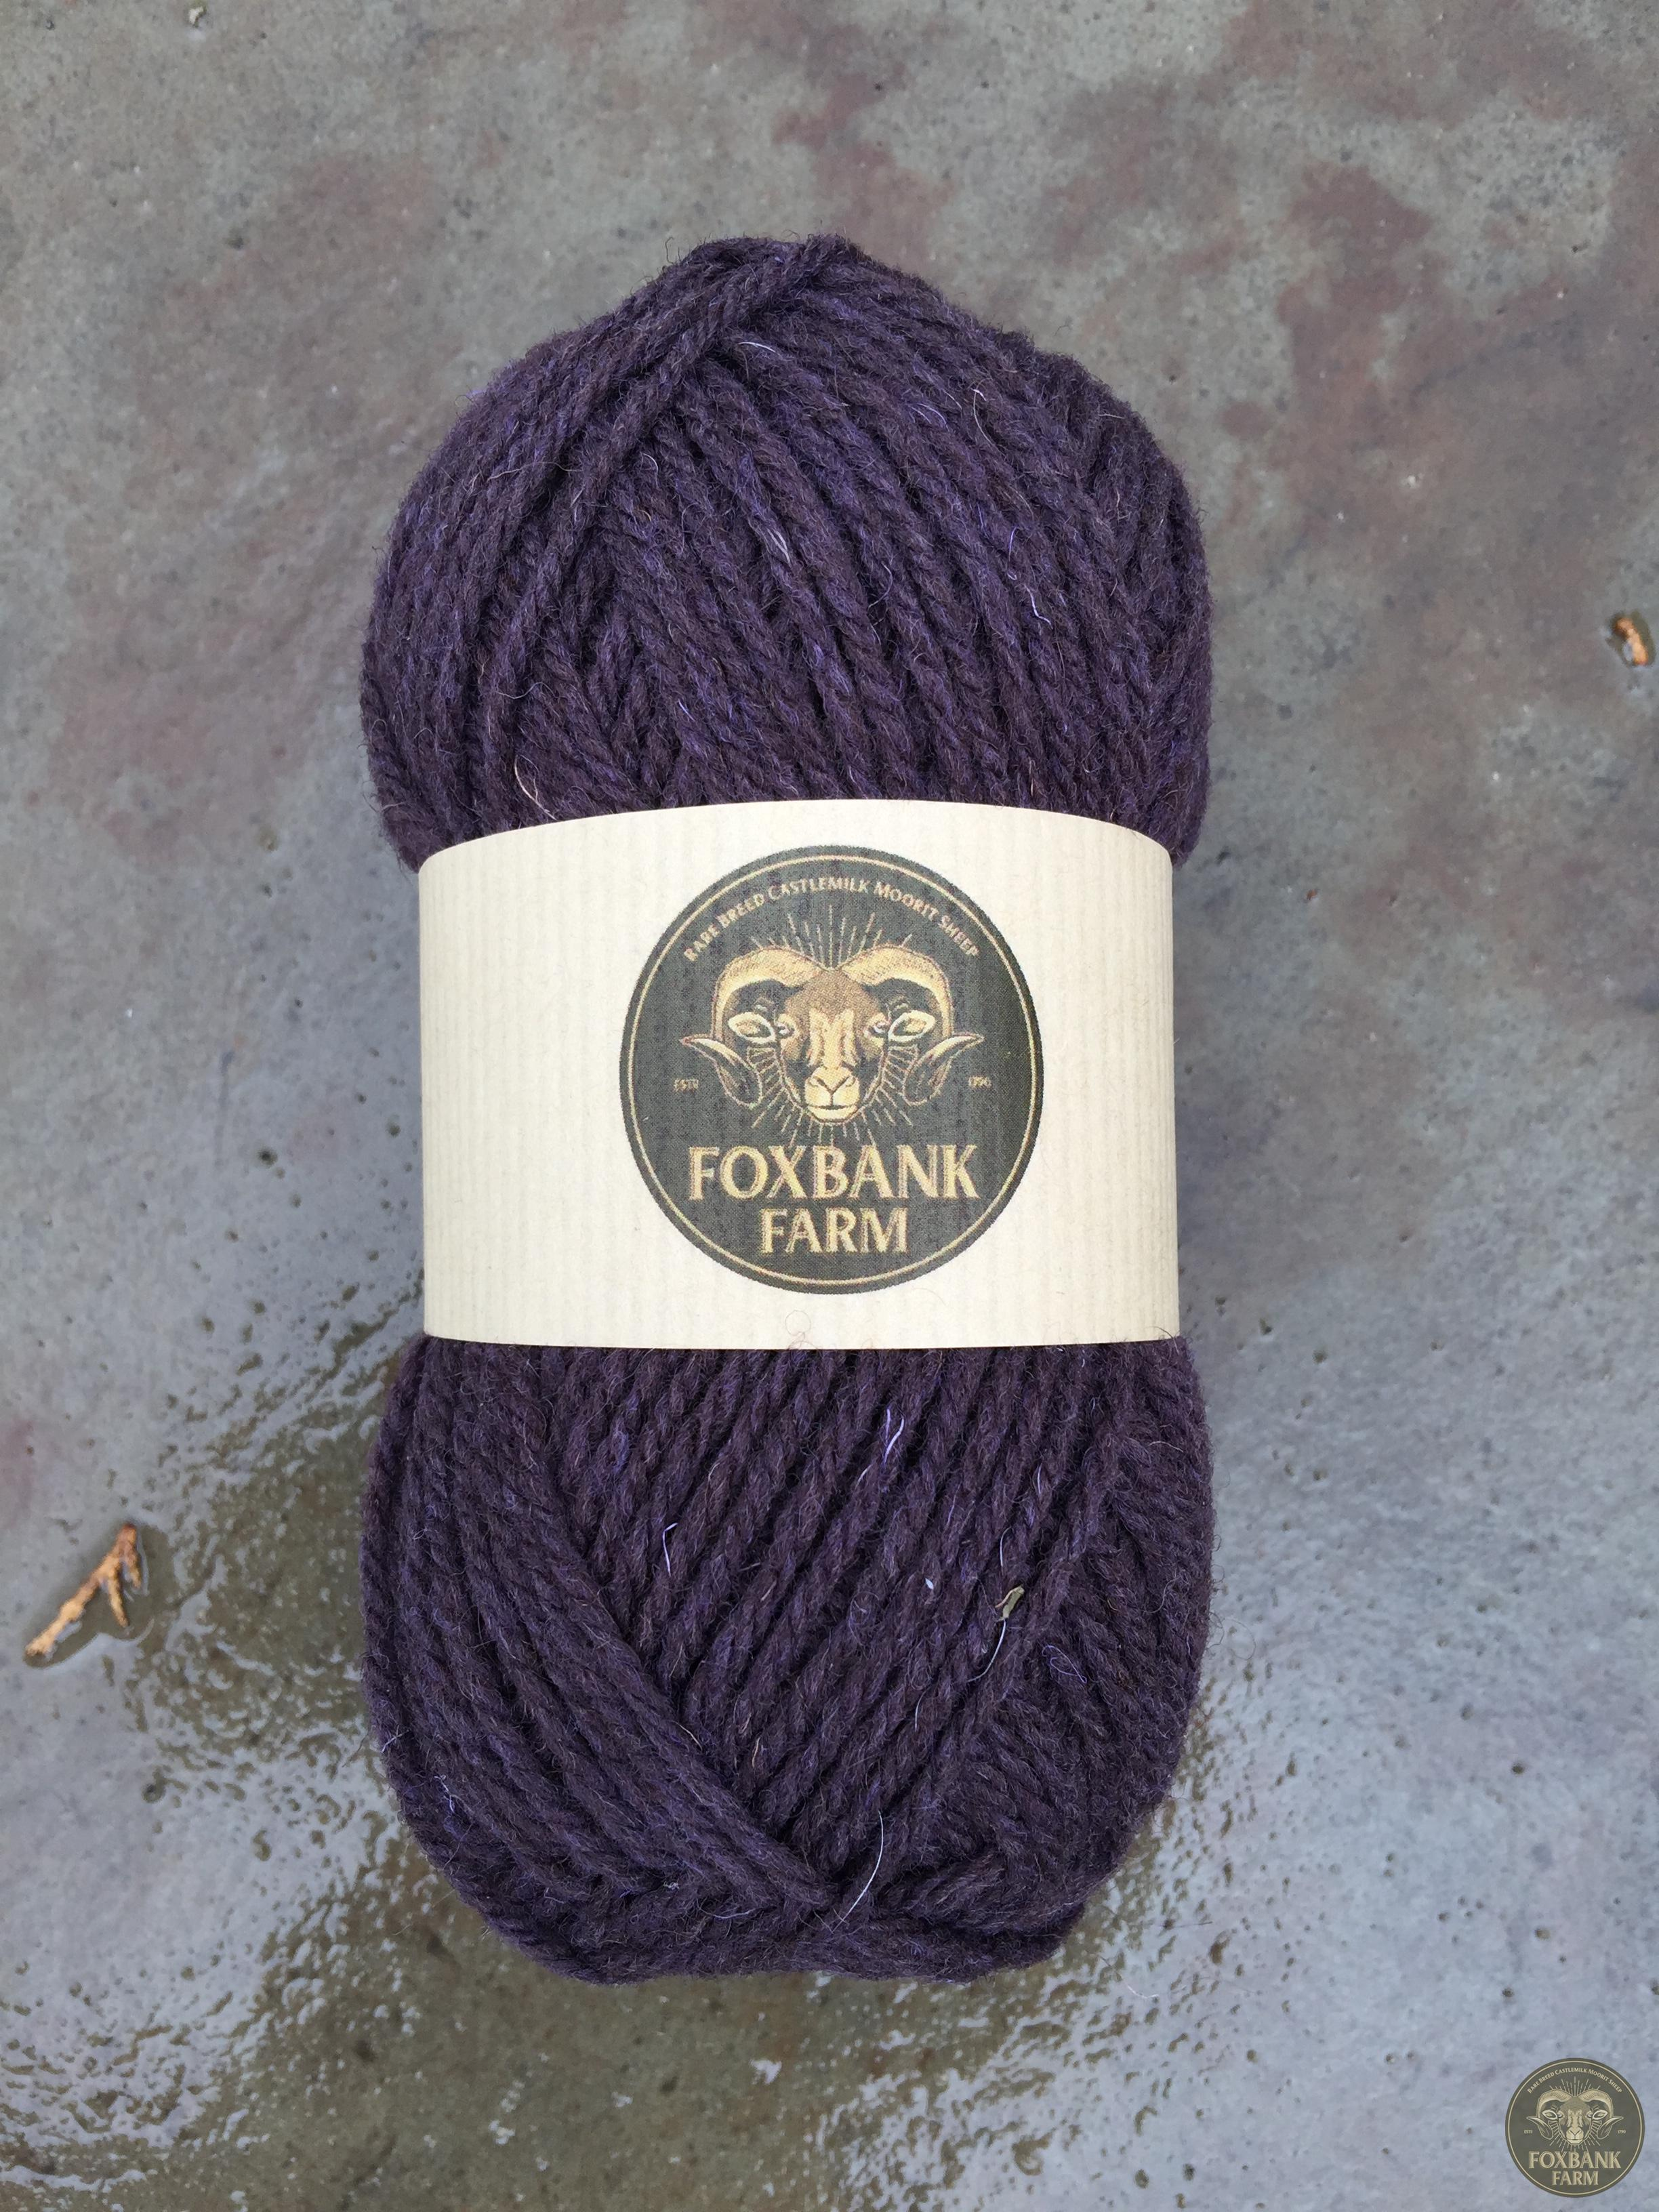 100% castlemilk moorit fibre purple plum foxbankfarm.co.uk